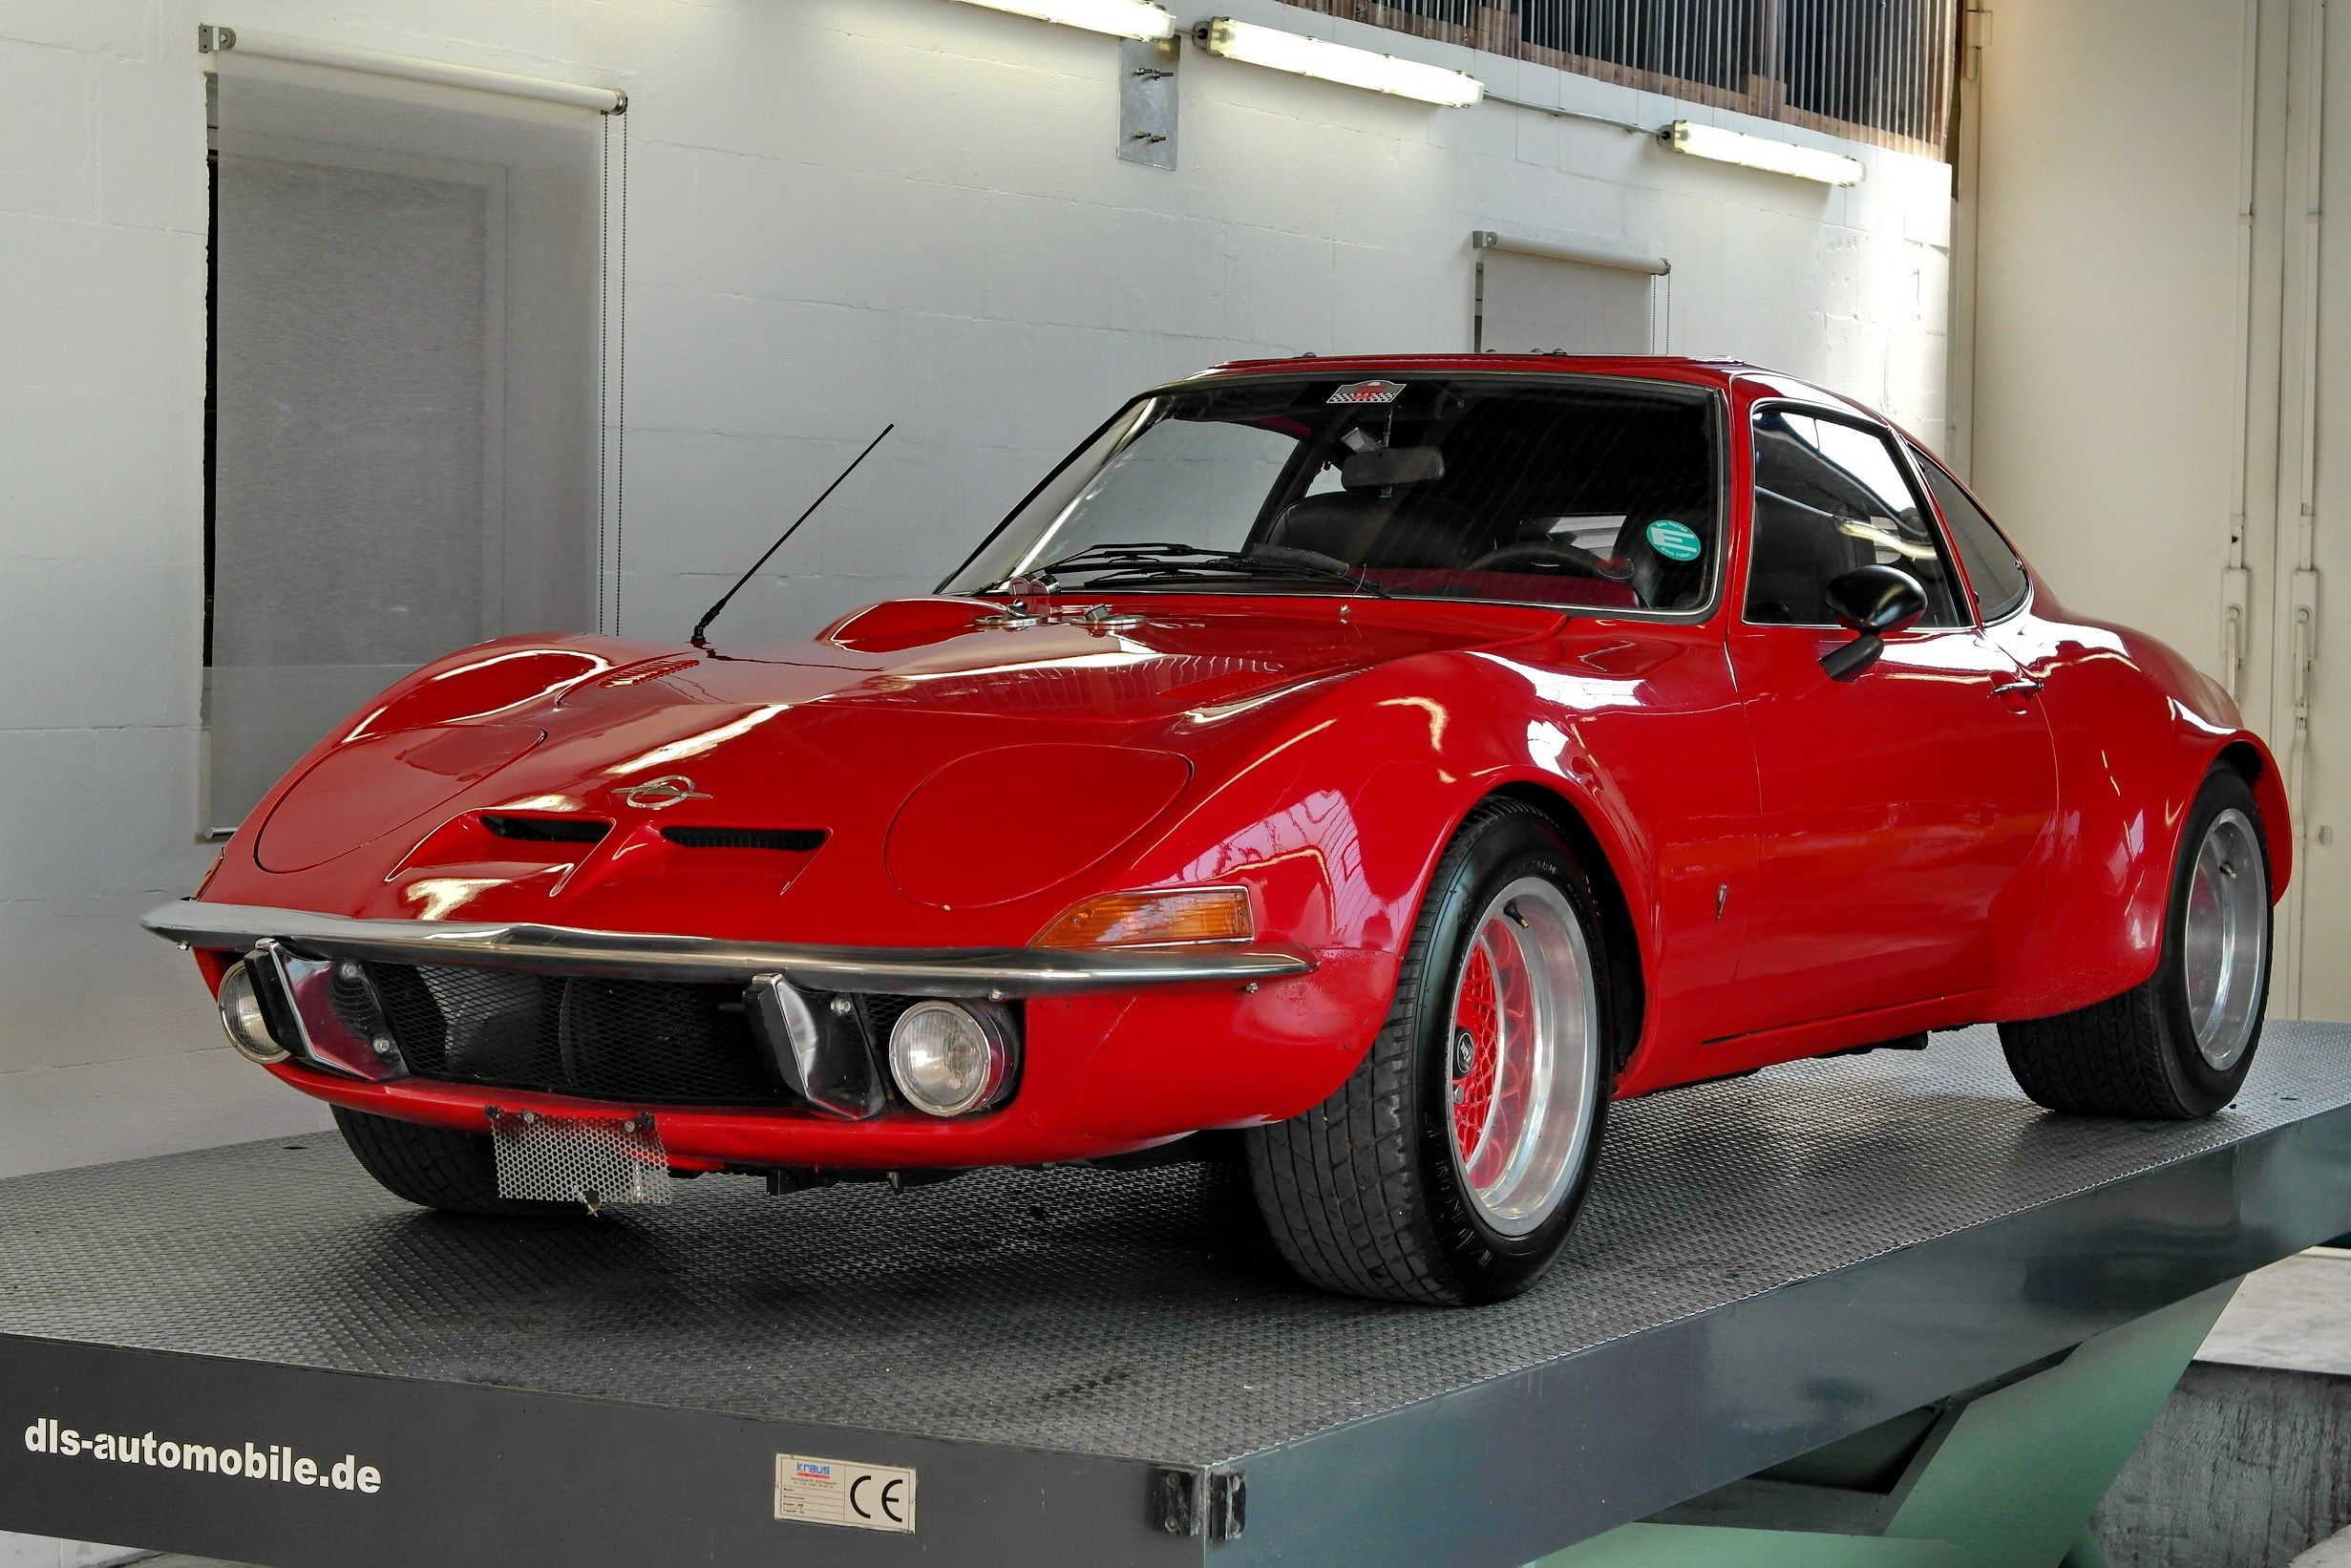 216a50bf7c Opel Gt V8 02 Dls Automobile